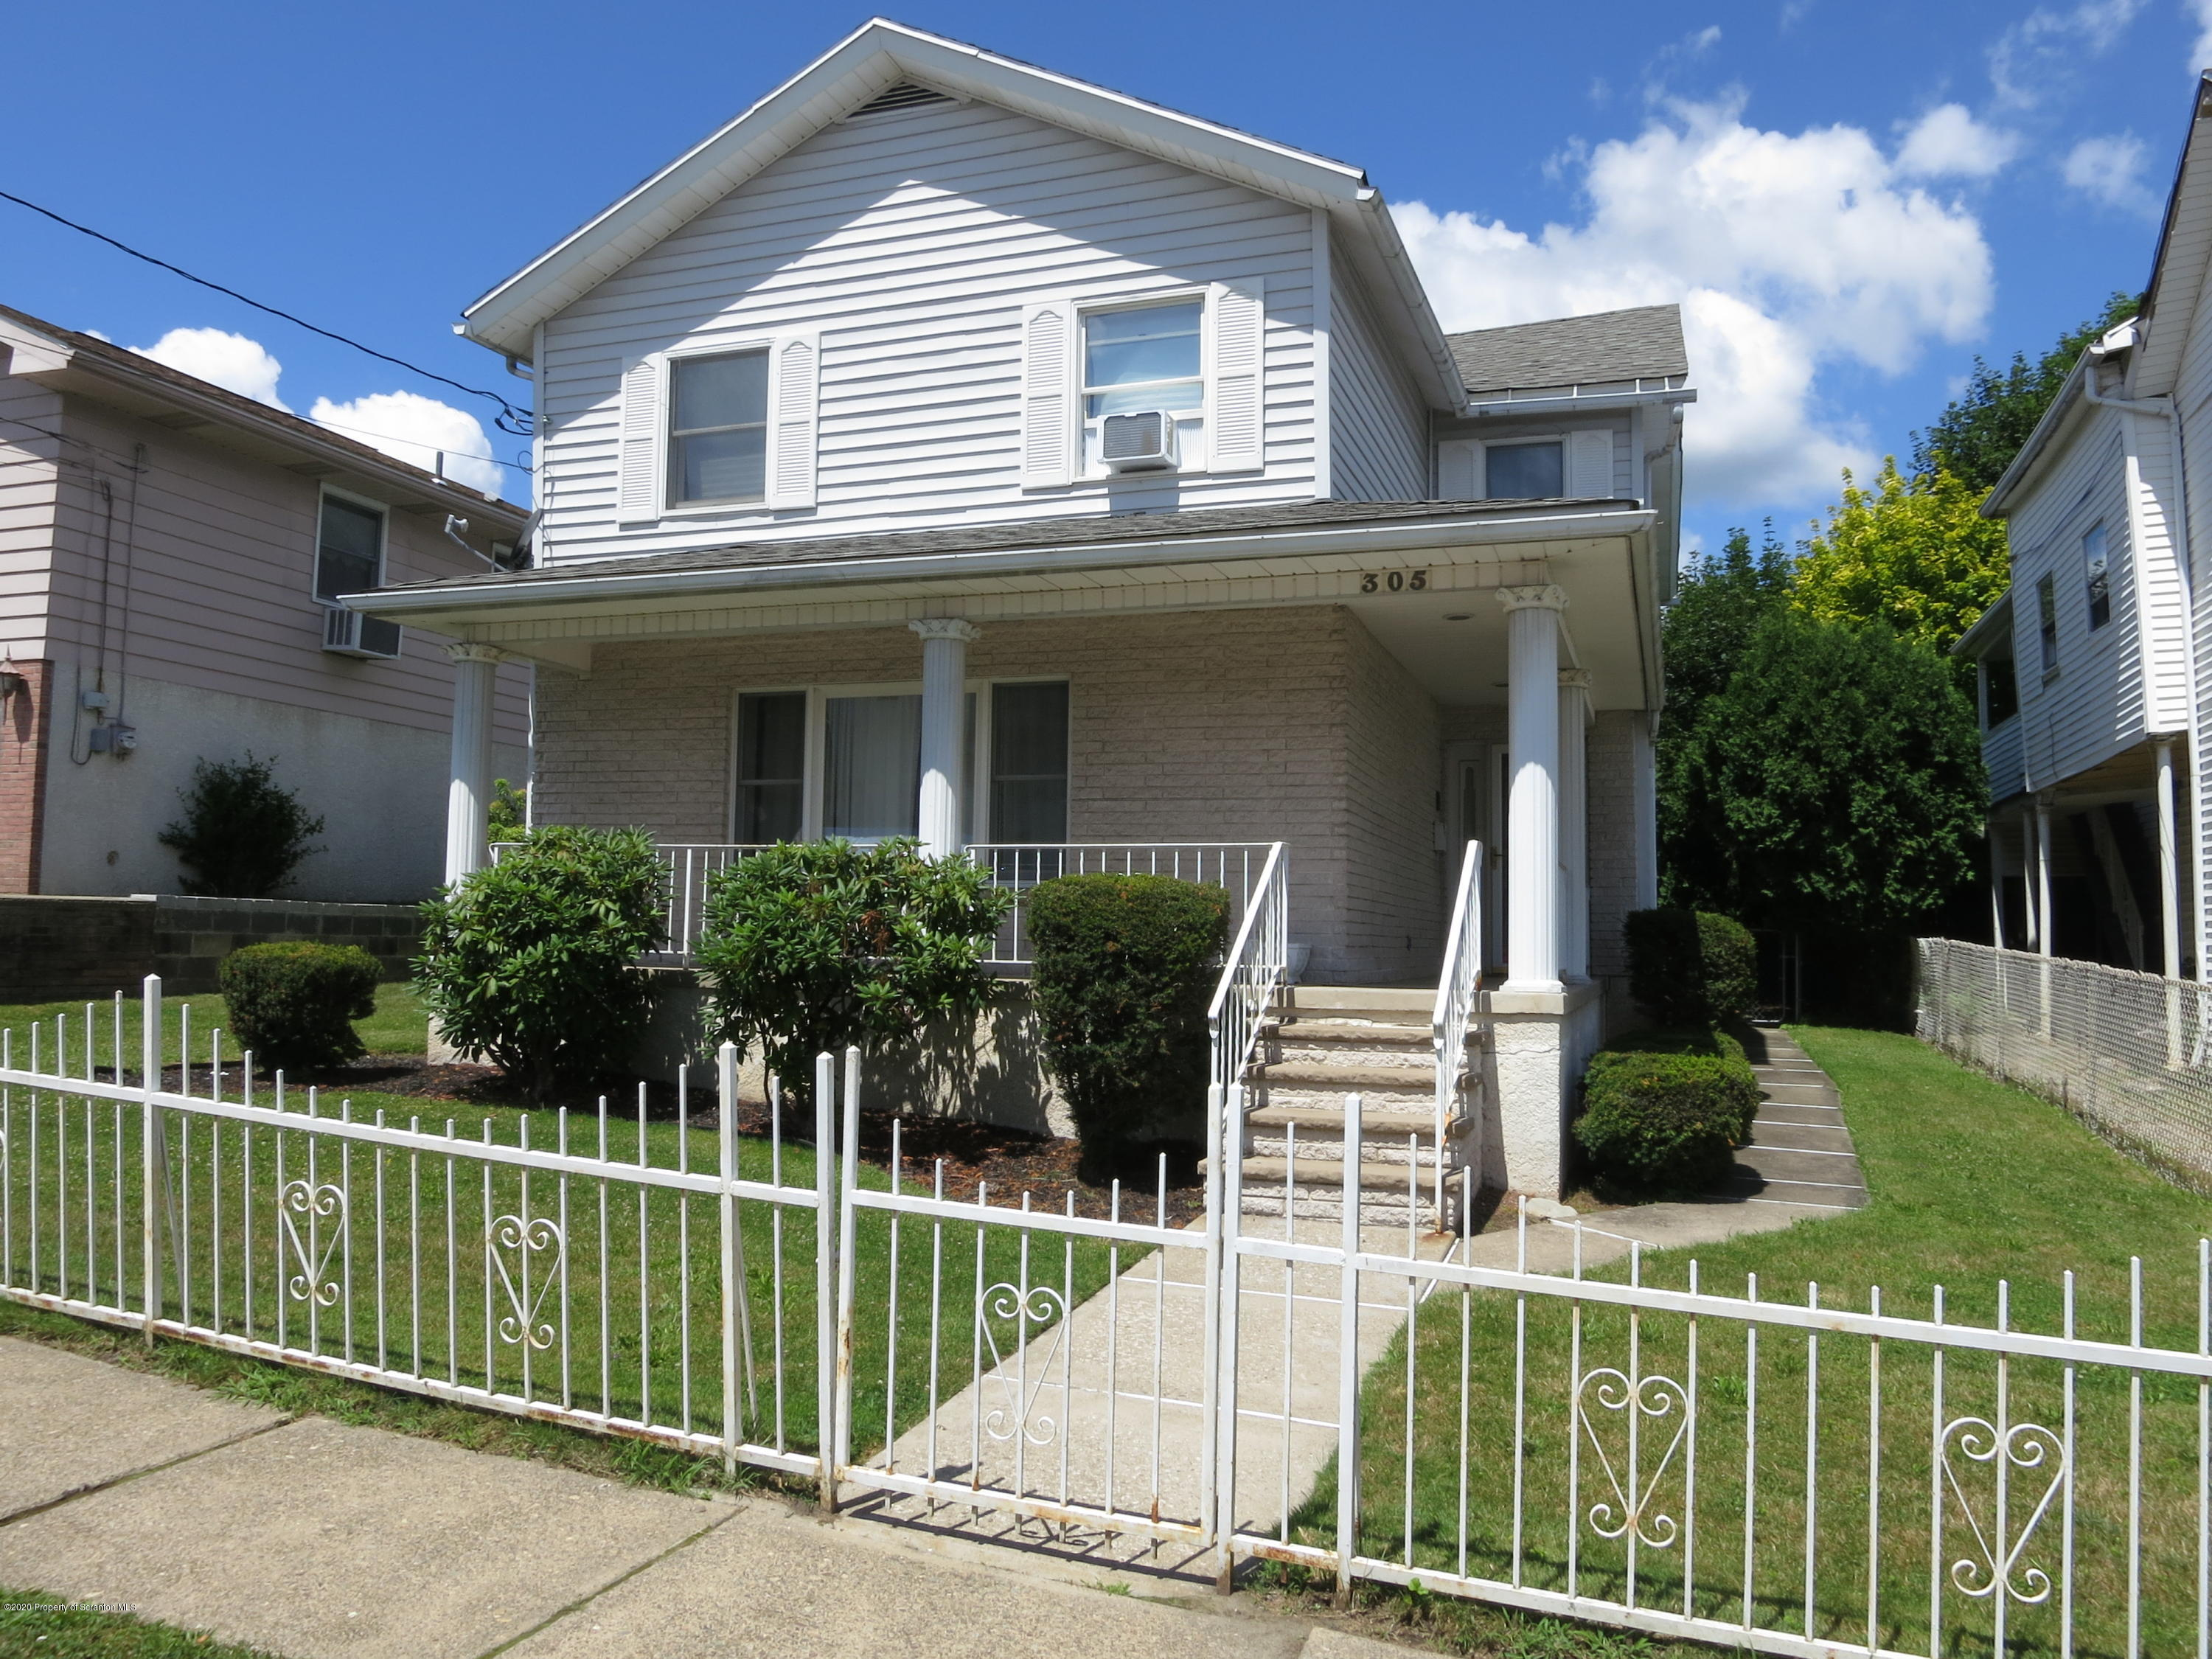 305 Lincoln Ave, Scranton, Pennsylvania 18504, 4 Bedrooms Bedrooms, 7 Rooms Rooms,2 BathroomsBathrooms,Single Family,For Sale,Lincoln,20-2637